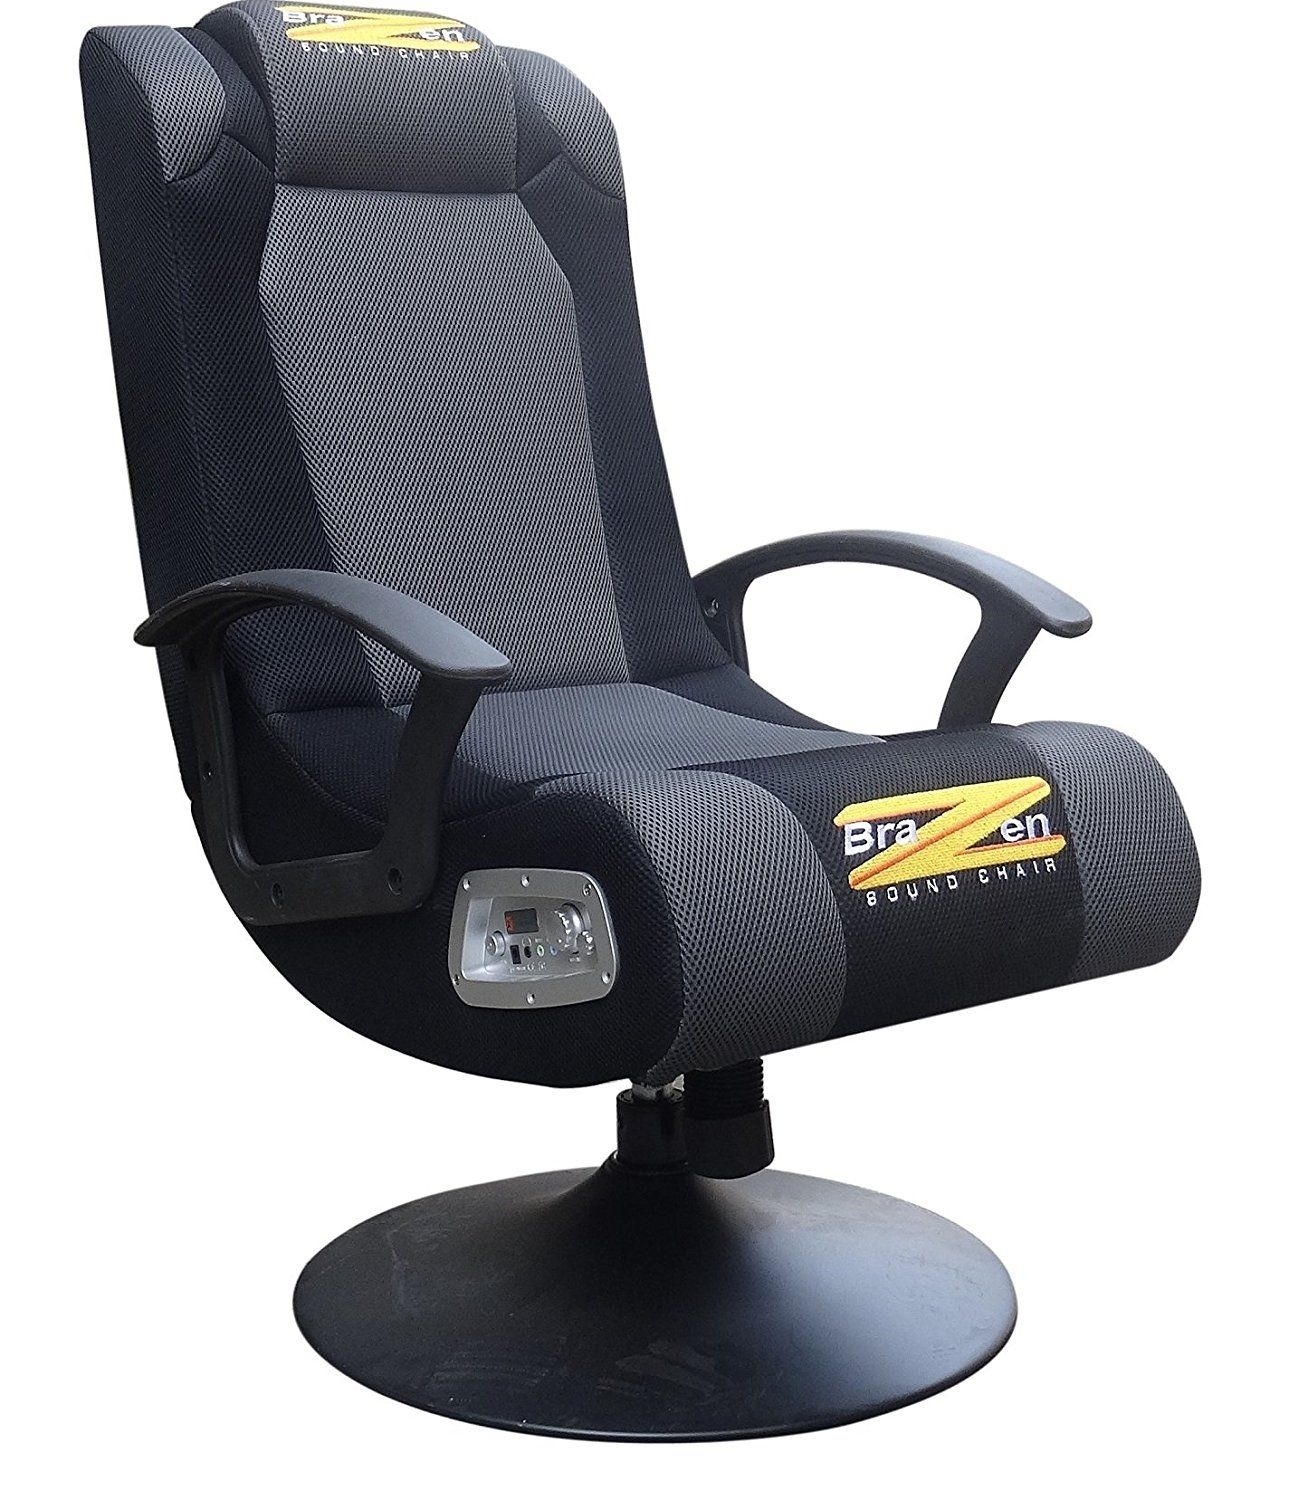 Being a pedestal gaming means this gaming chair can double